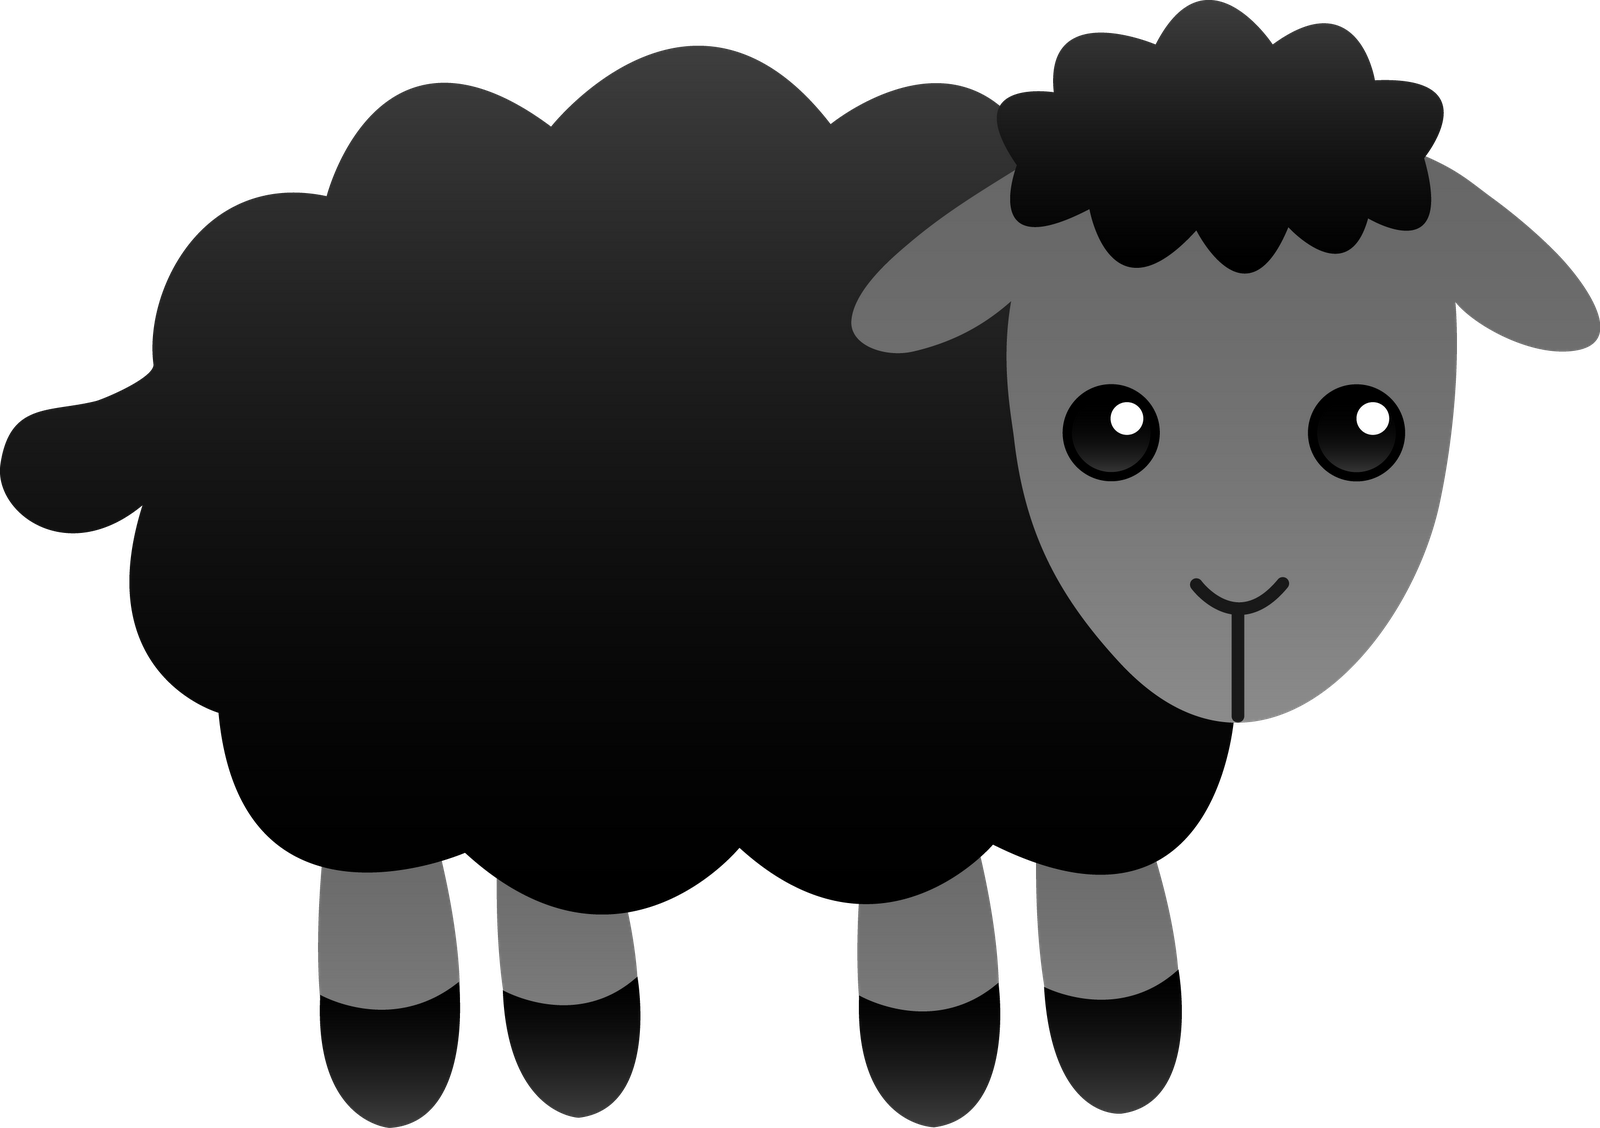 Cute sheep baby lambs flock free clipart vector picture free download Free Sheep Clipart | Free download best Free Sheep Clipart ... picture free download